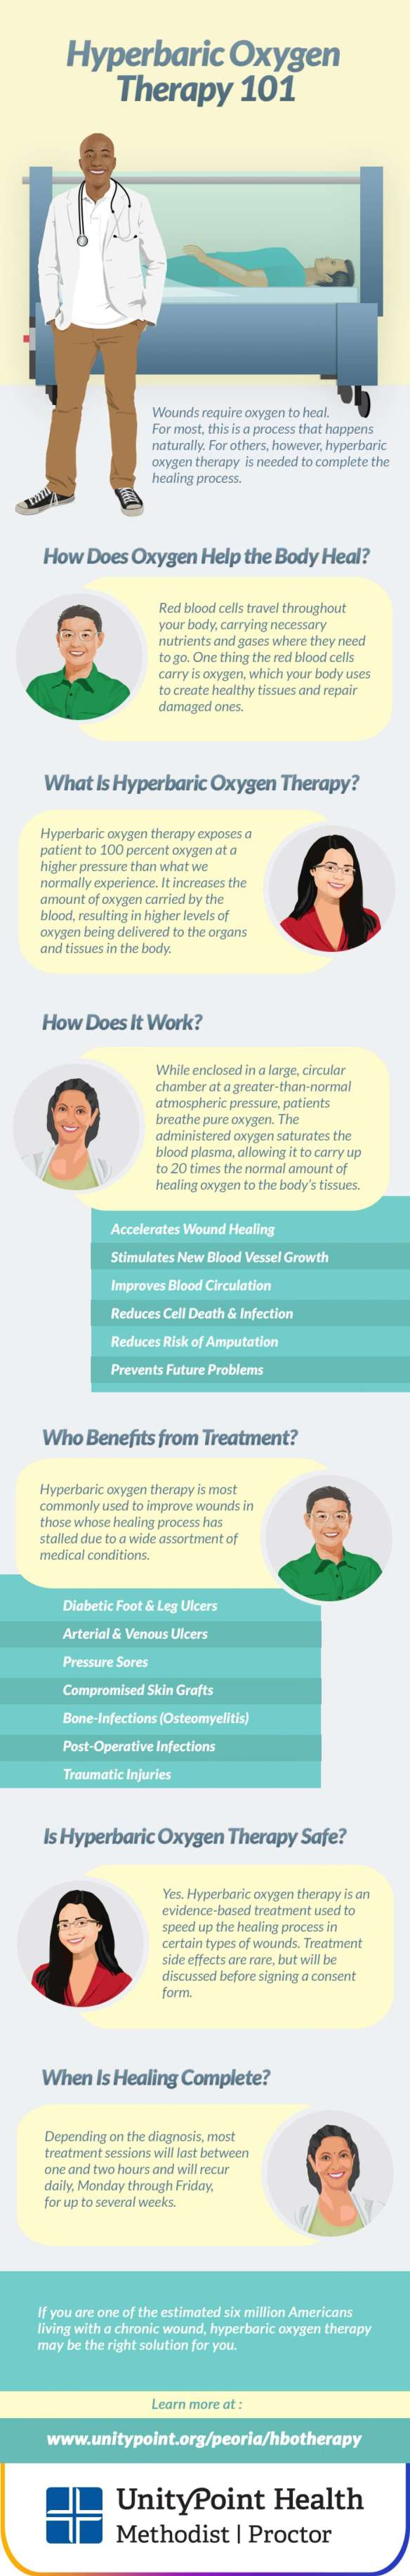 hyperbaric-oxygen-therapy-101-infographic_5448090940641_w1500